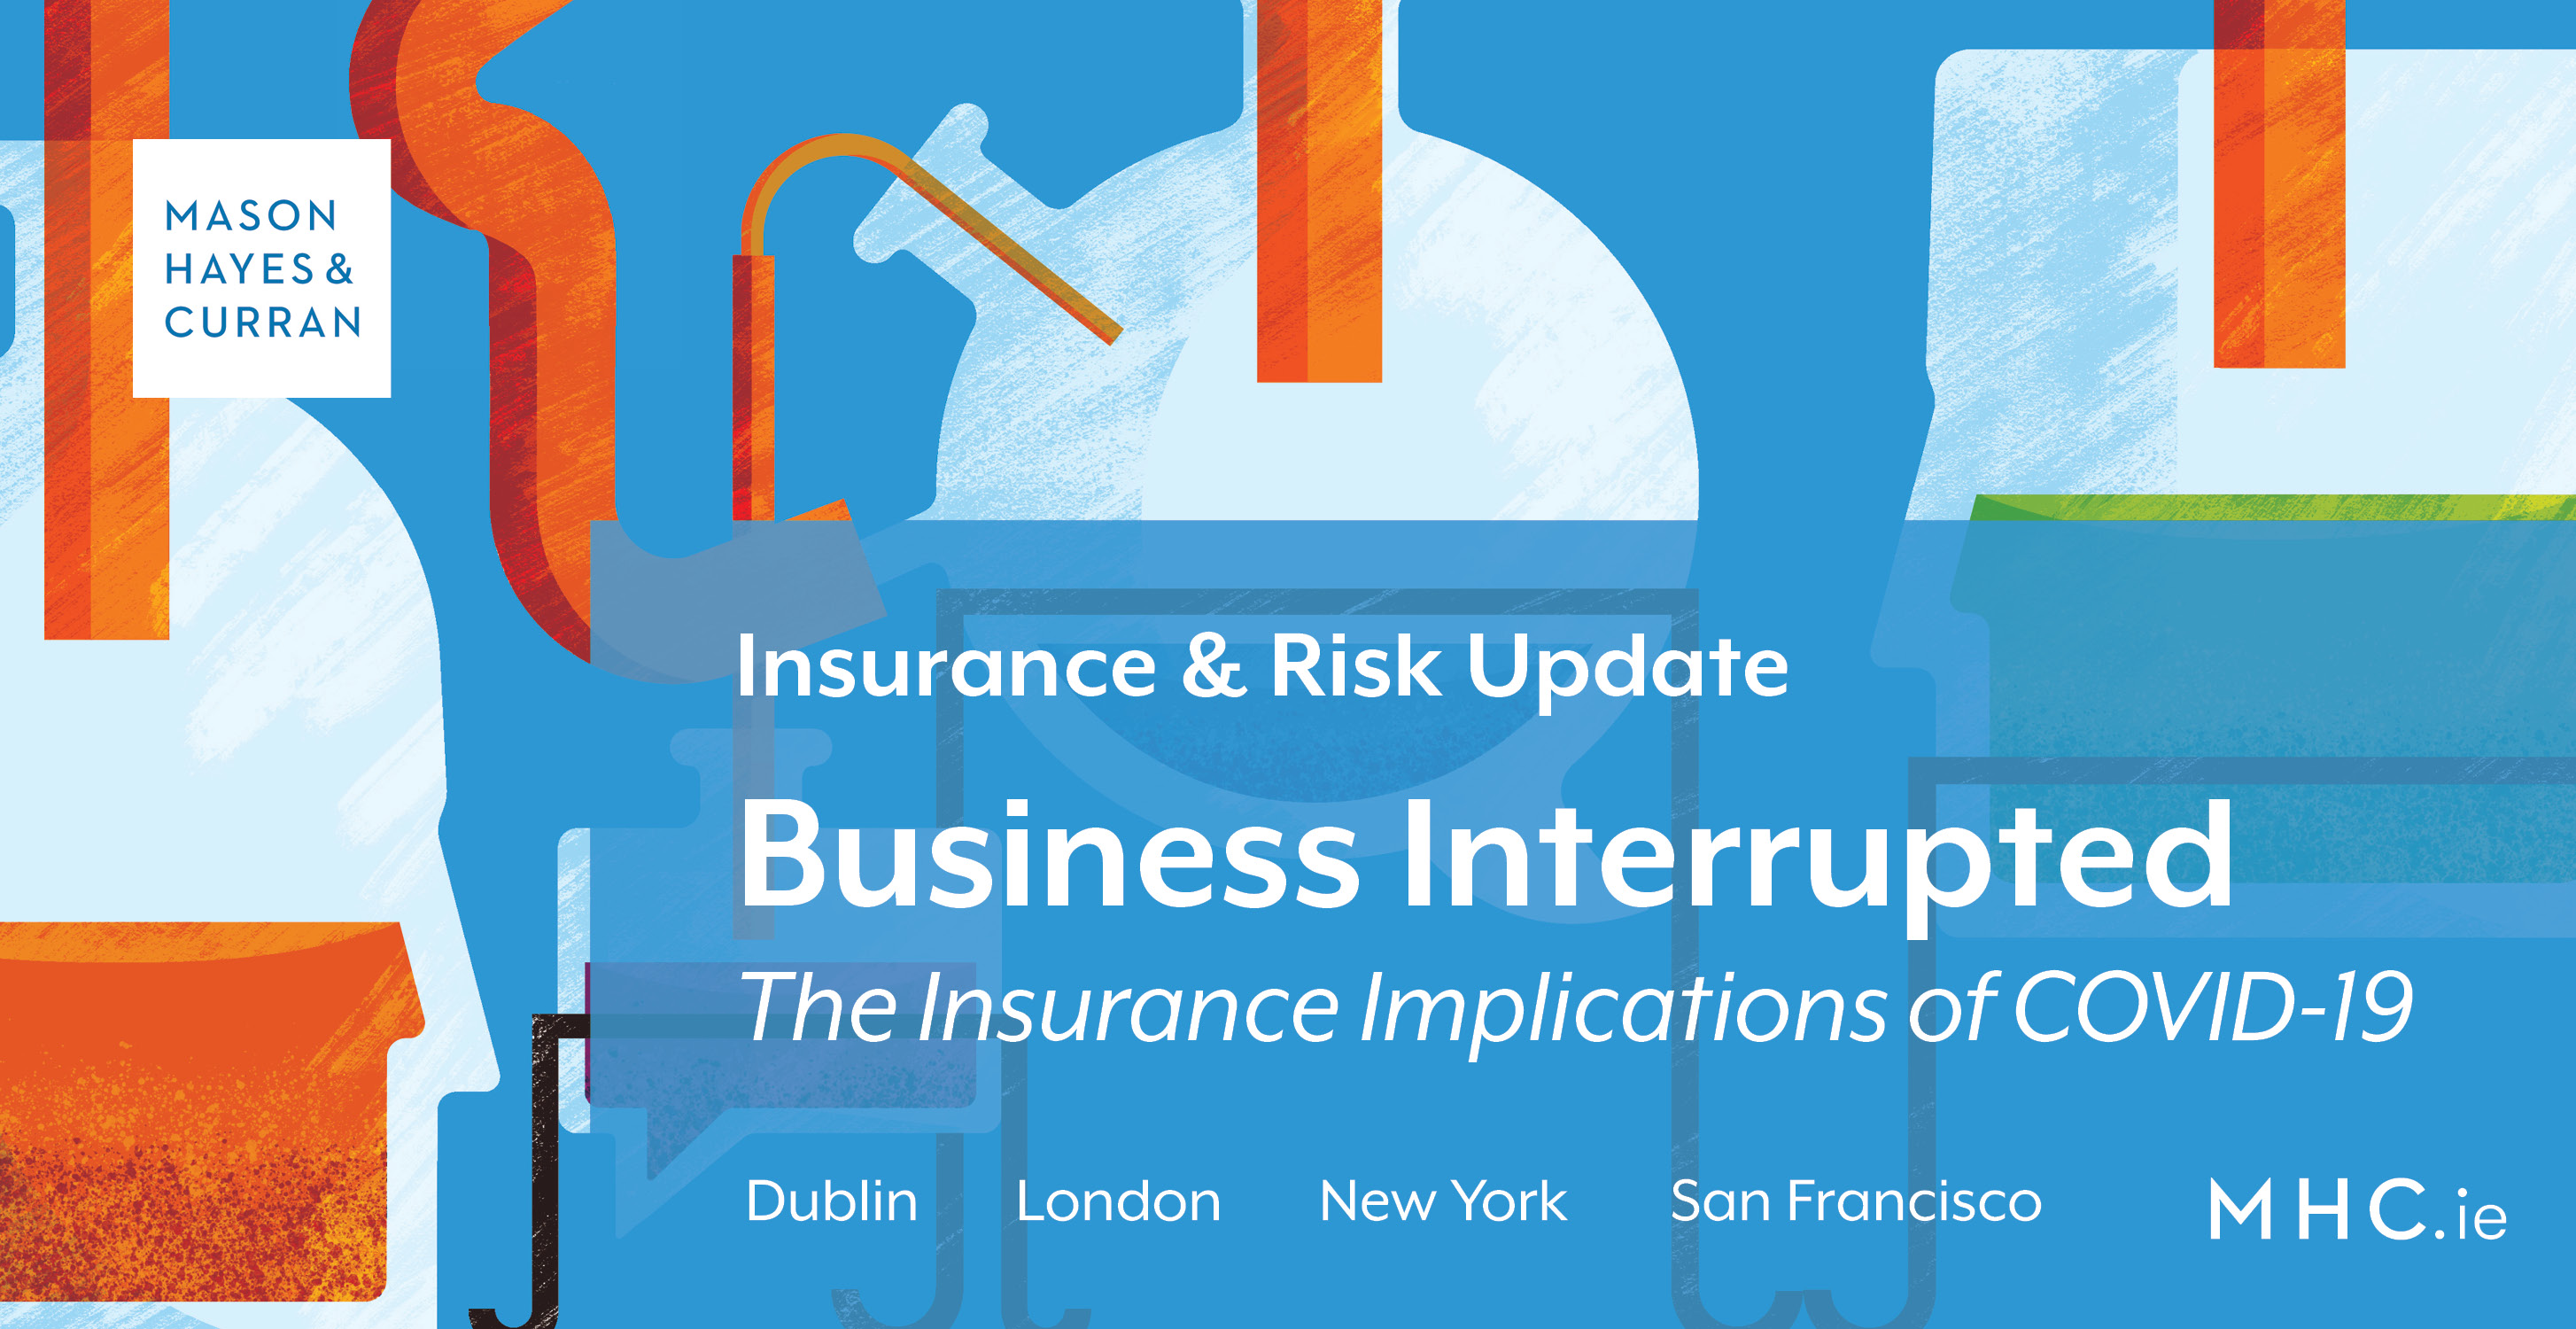 Business Interrupted The Insurance Implications Of Covid 19 Mason Hayes Curran